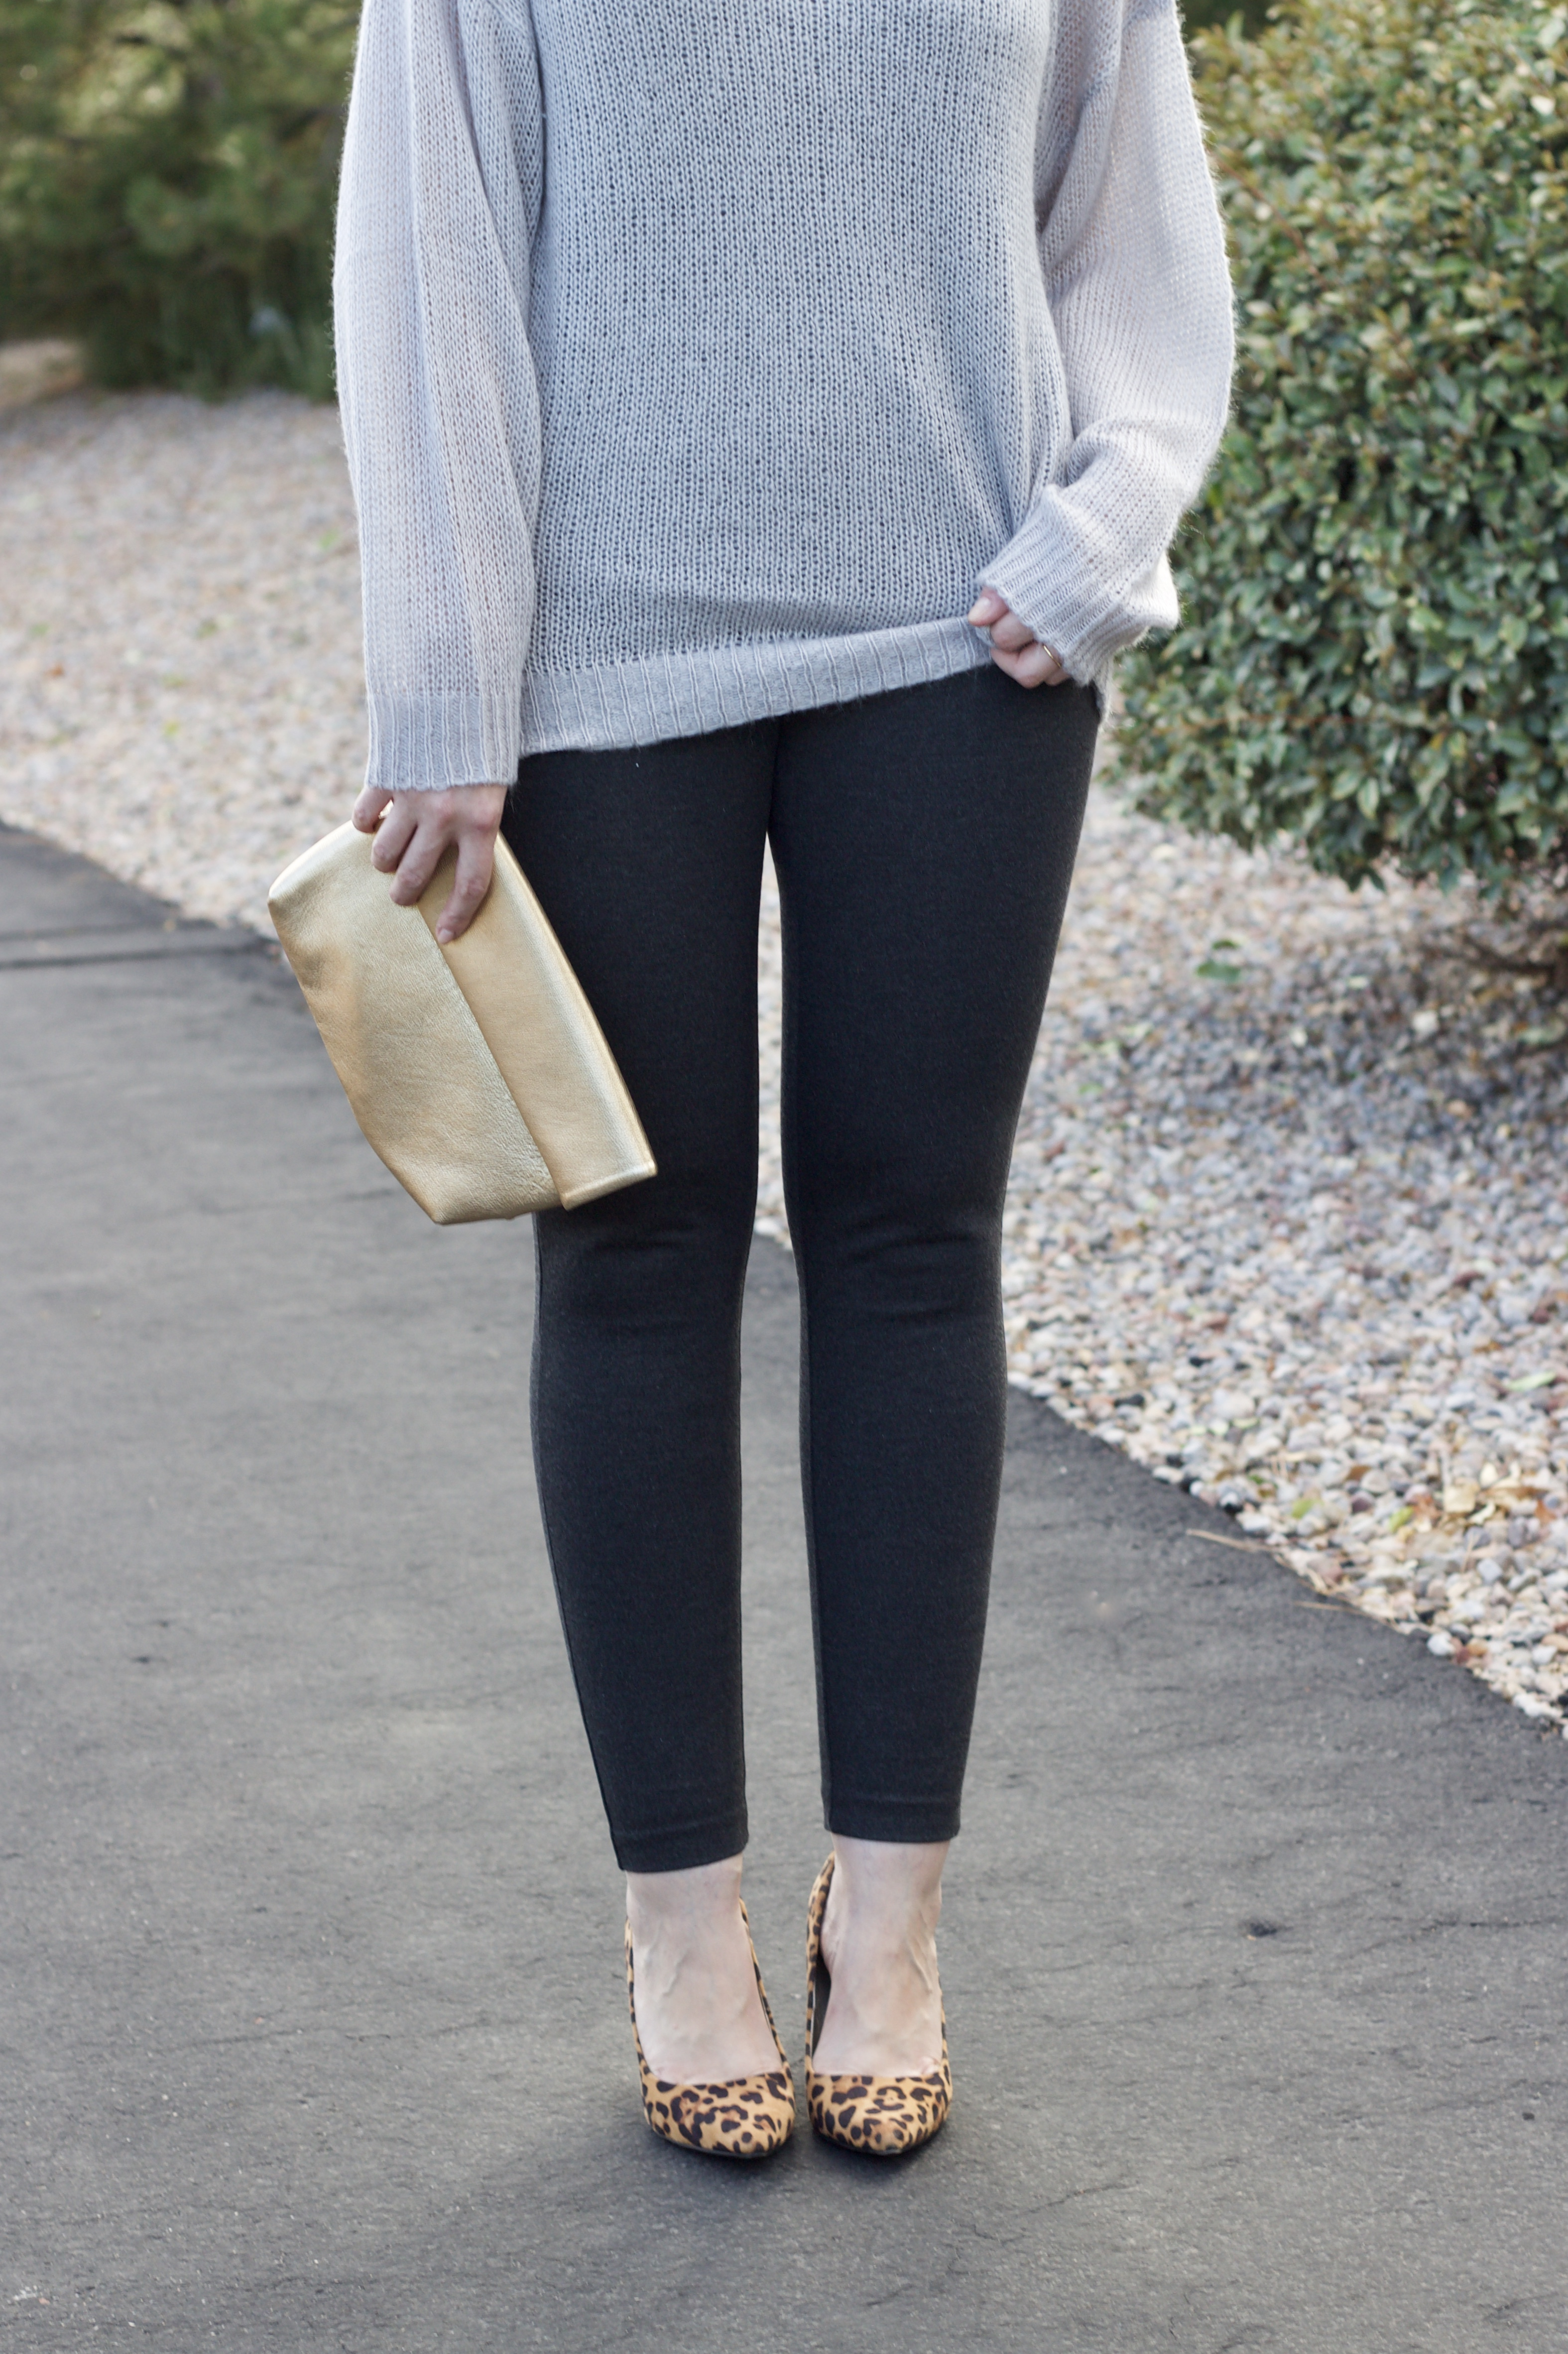 JCrew pixie pants and oversized sweater